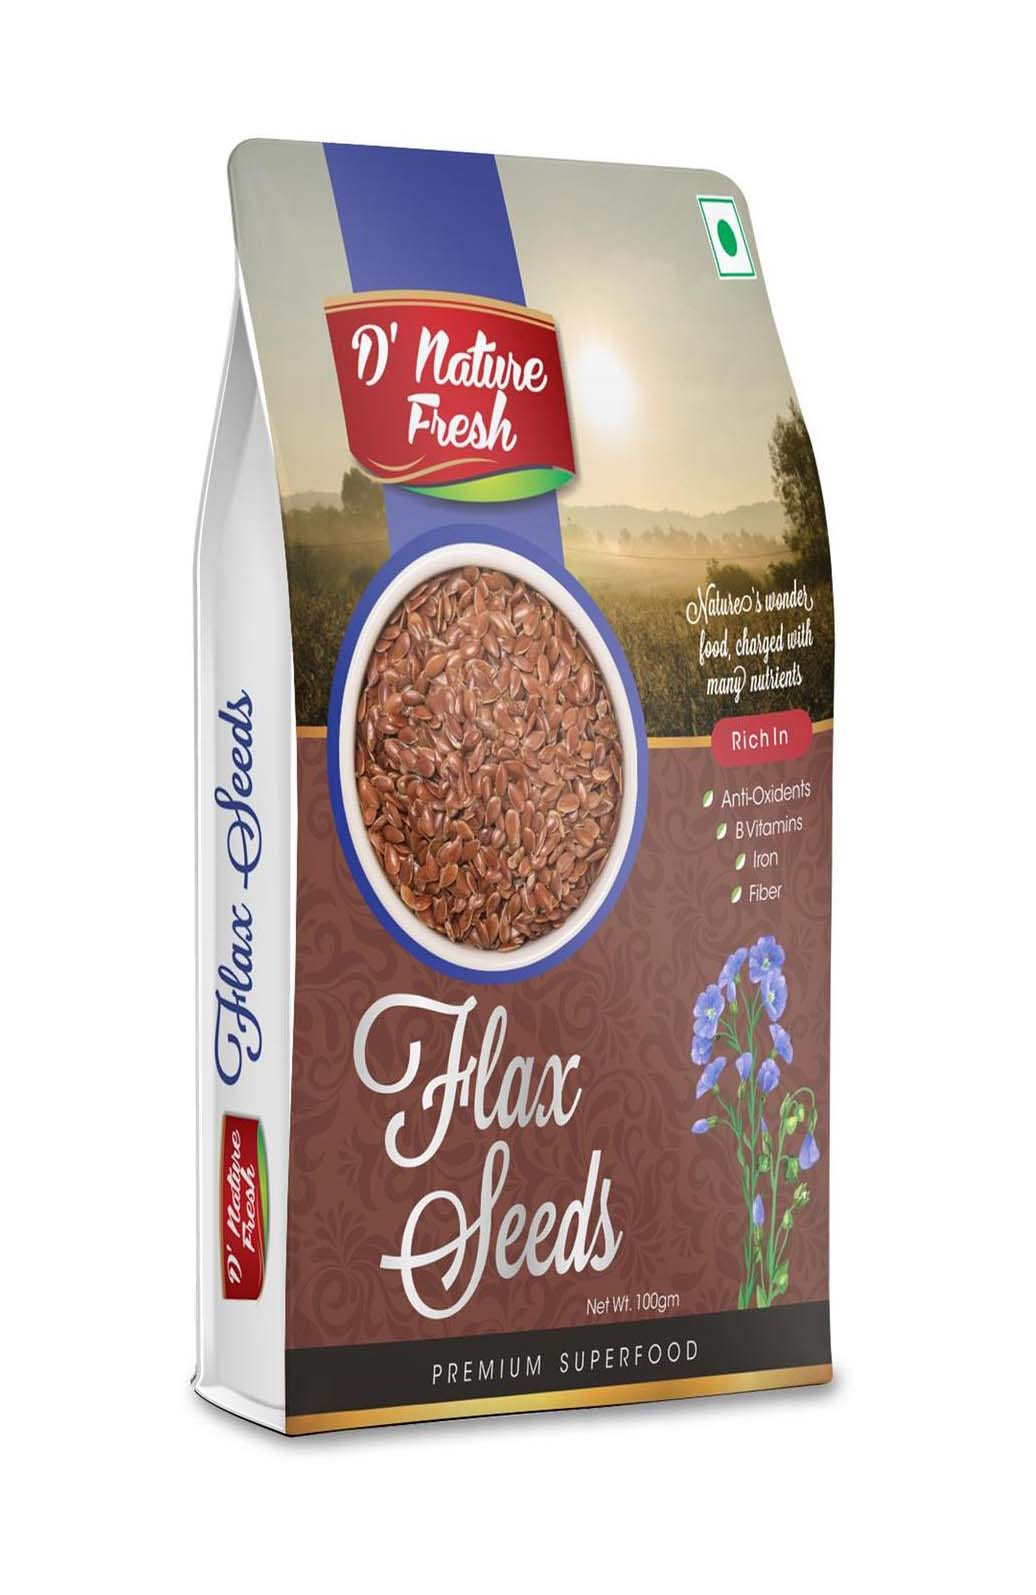 D' Nature Fresh Flax Seeds